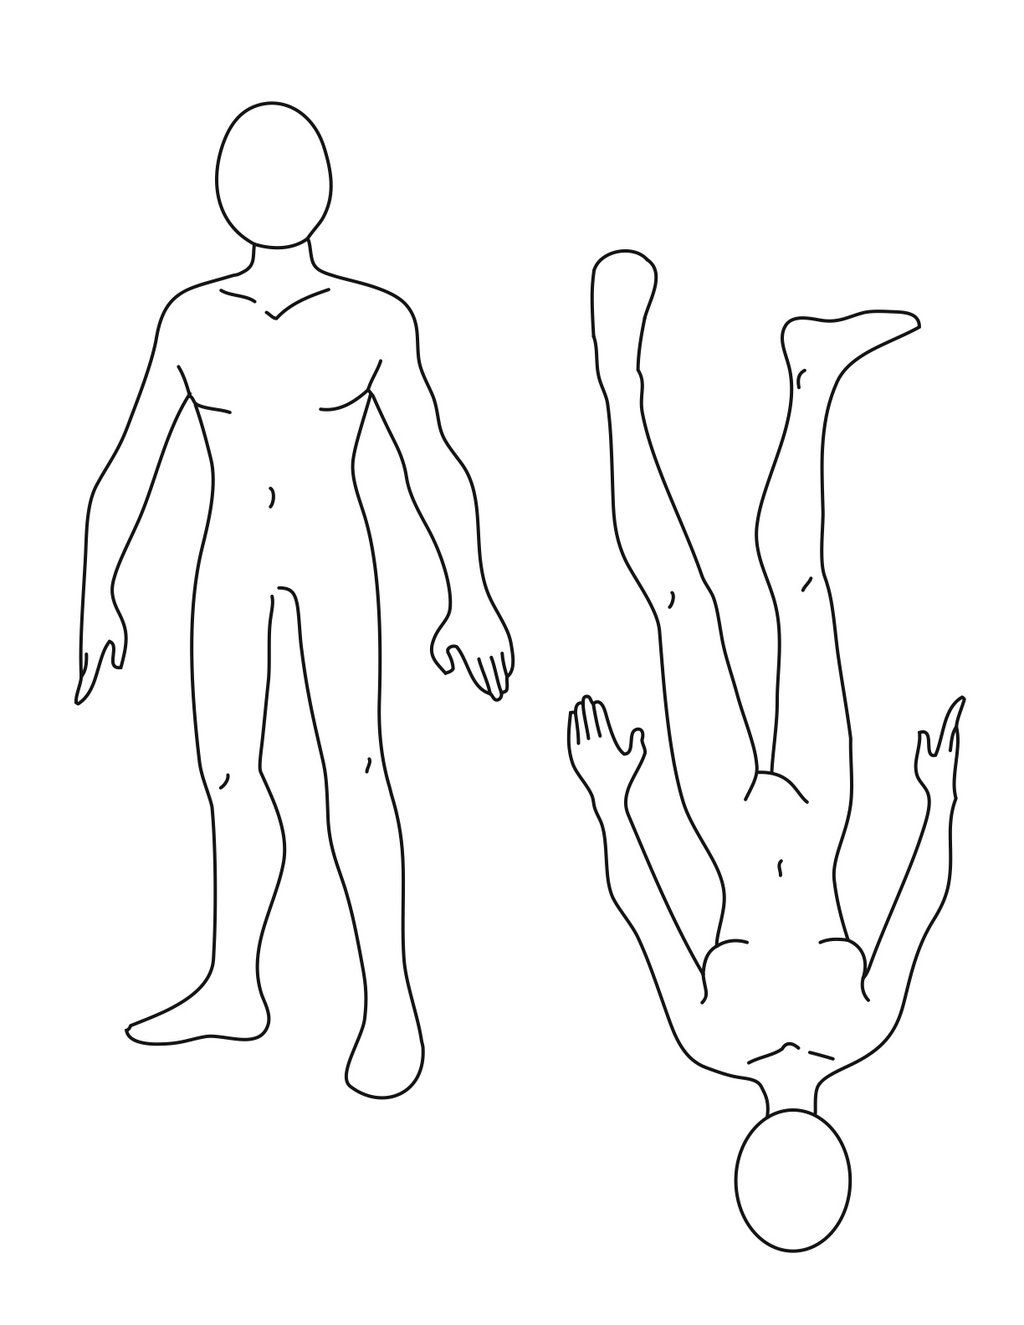 Basic Body Template for man or woman | Costume - Rendering Templates ...